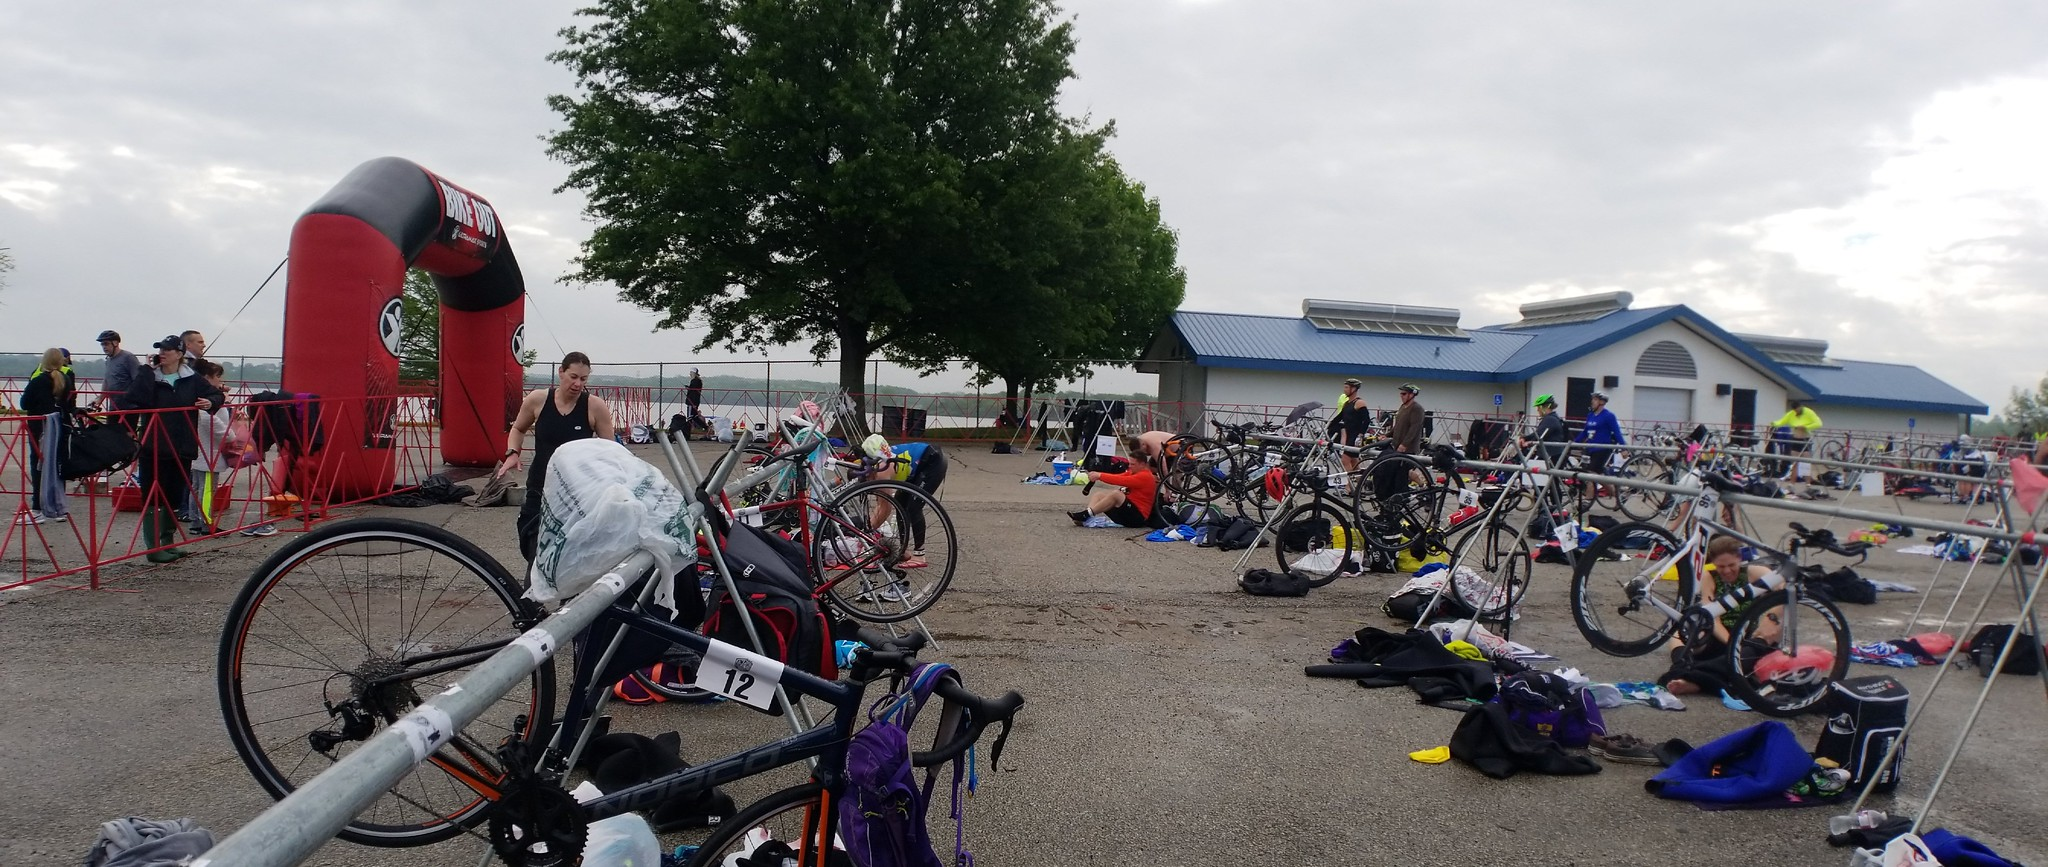 2019 Kansas City Triathlon